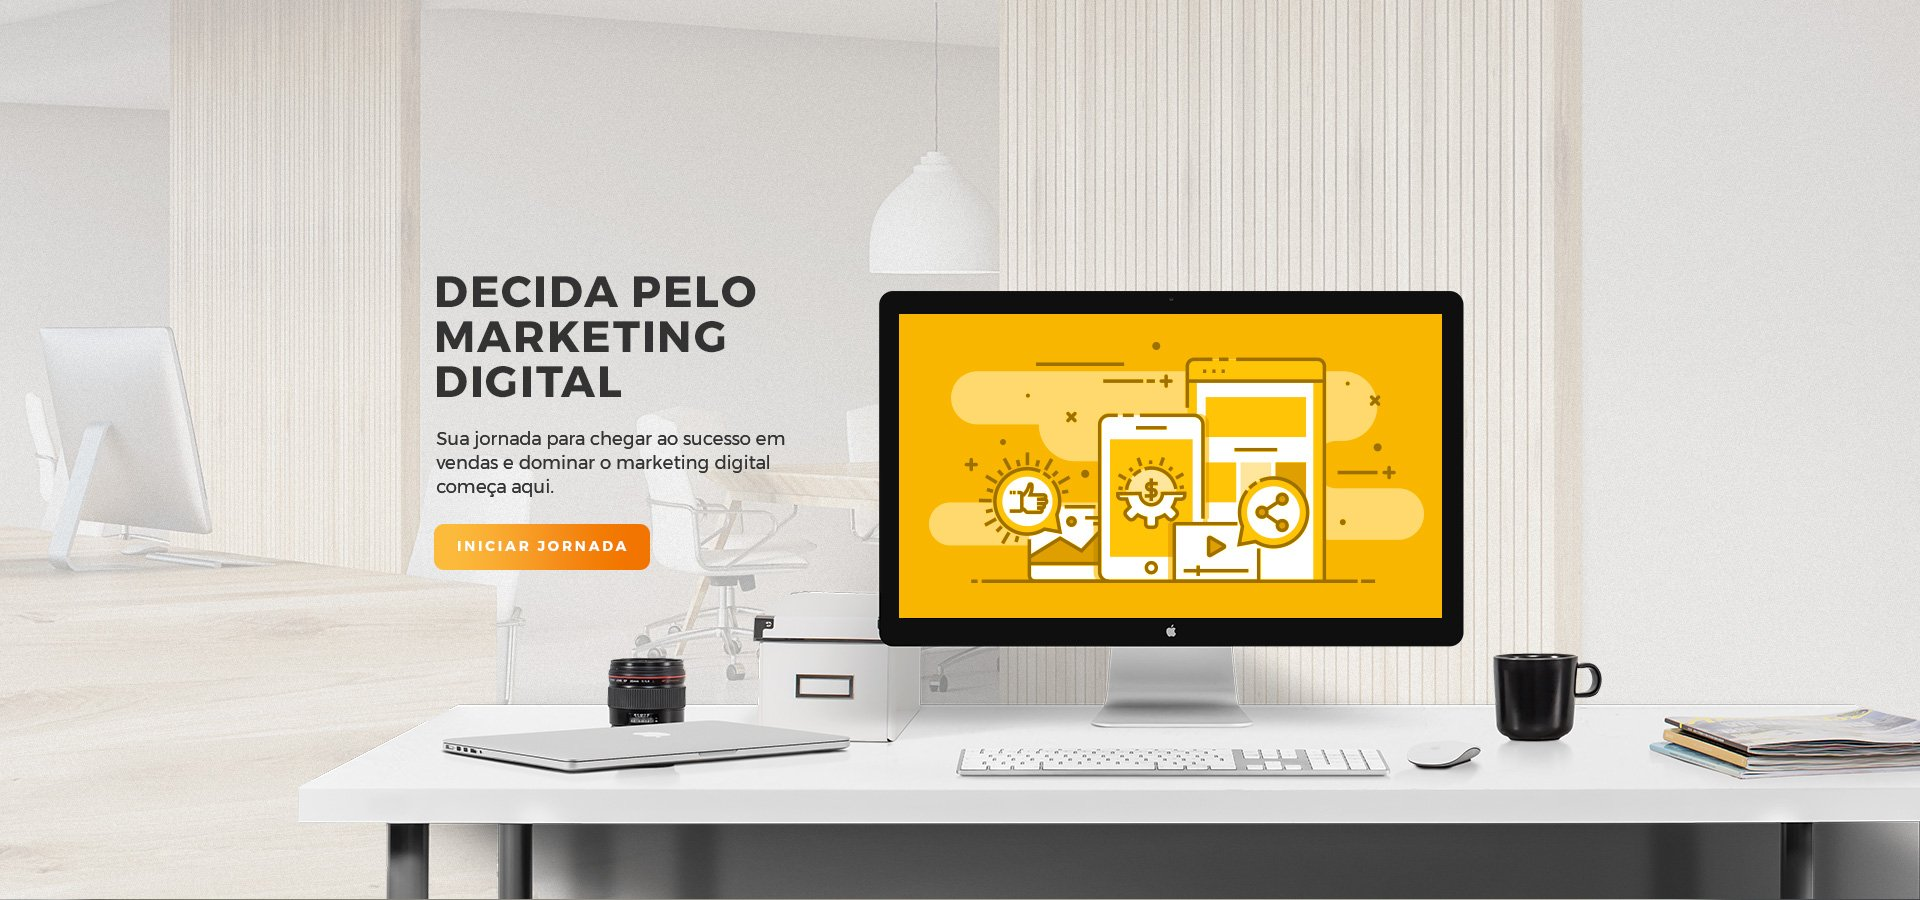 Leelah Agência de Marketing Digital - Decida pelo Marketing Digital